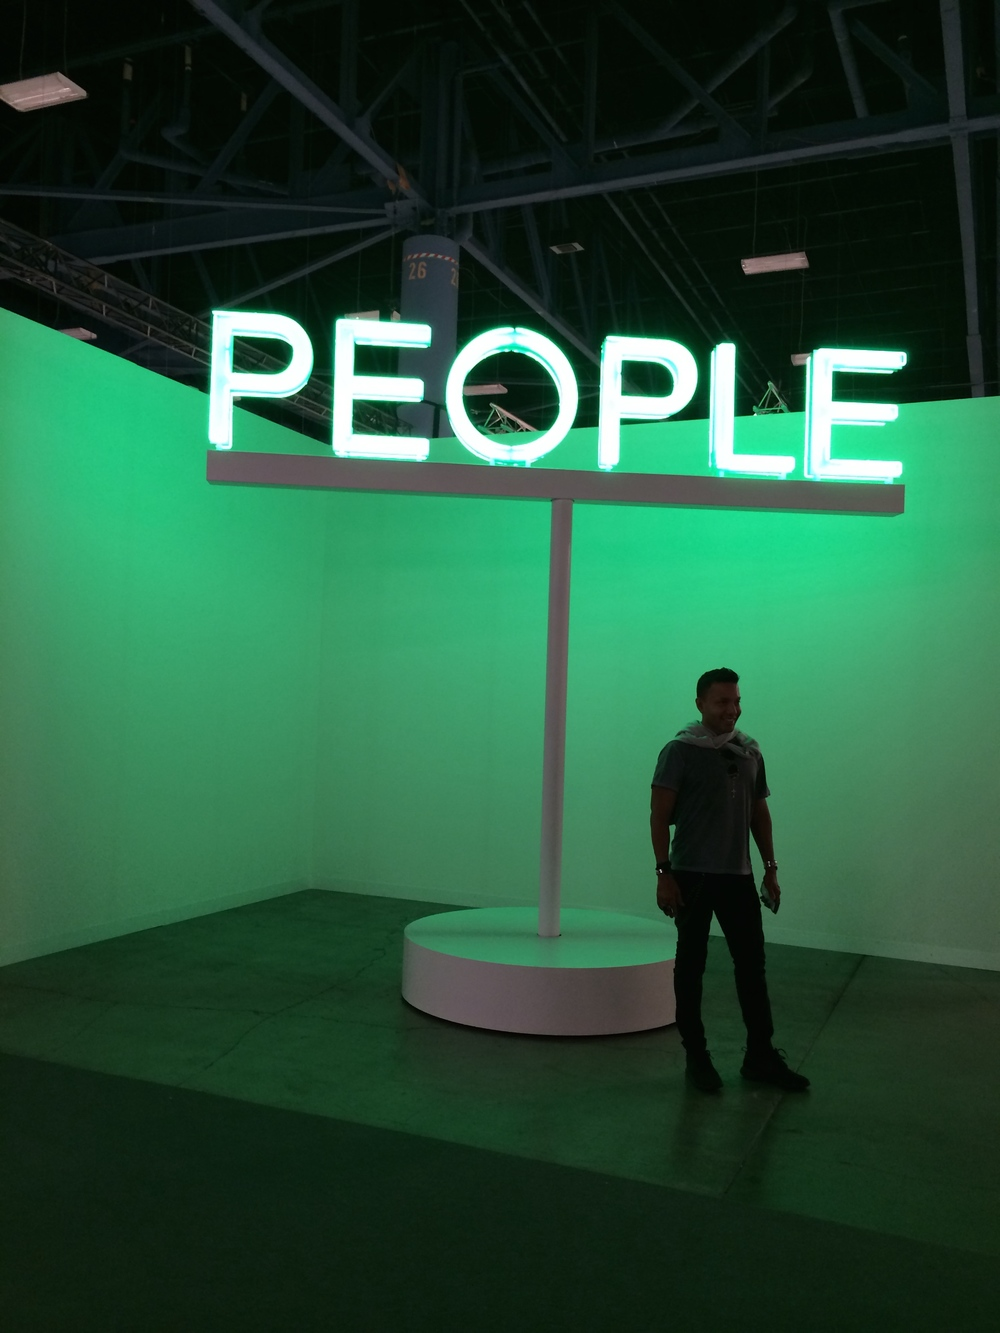 We might be going out on a limb to suggest this work by Martin Creed (Work No. 2070: People, 2014. Neon, metal, motor. 126 x 120 x 5 in) was the most Instagramed (is that a word?) piece at the fair. It was irresistible and got my finger on the video shot dot, available for your viewing pleasure here.